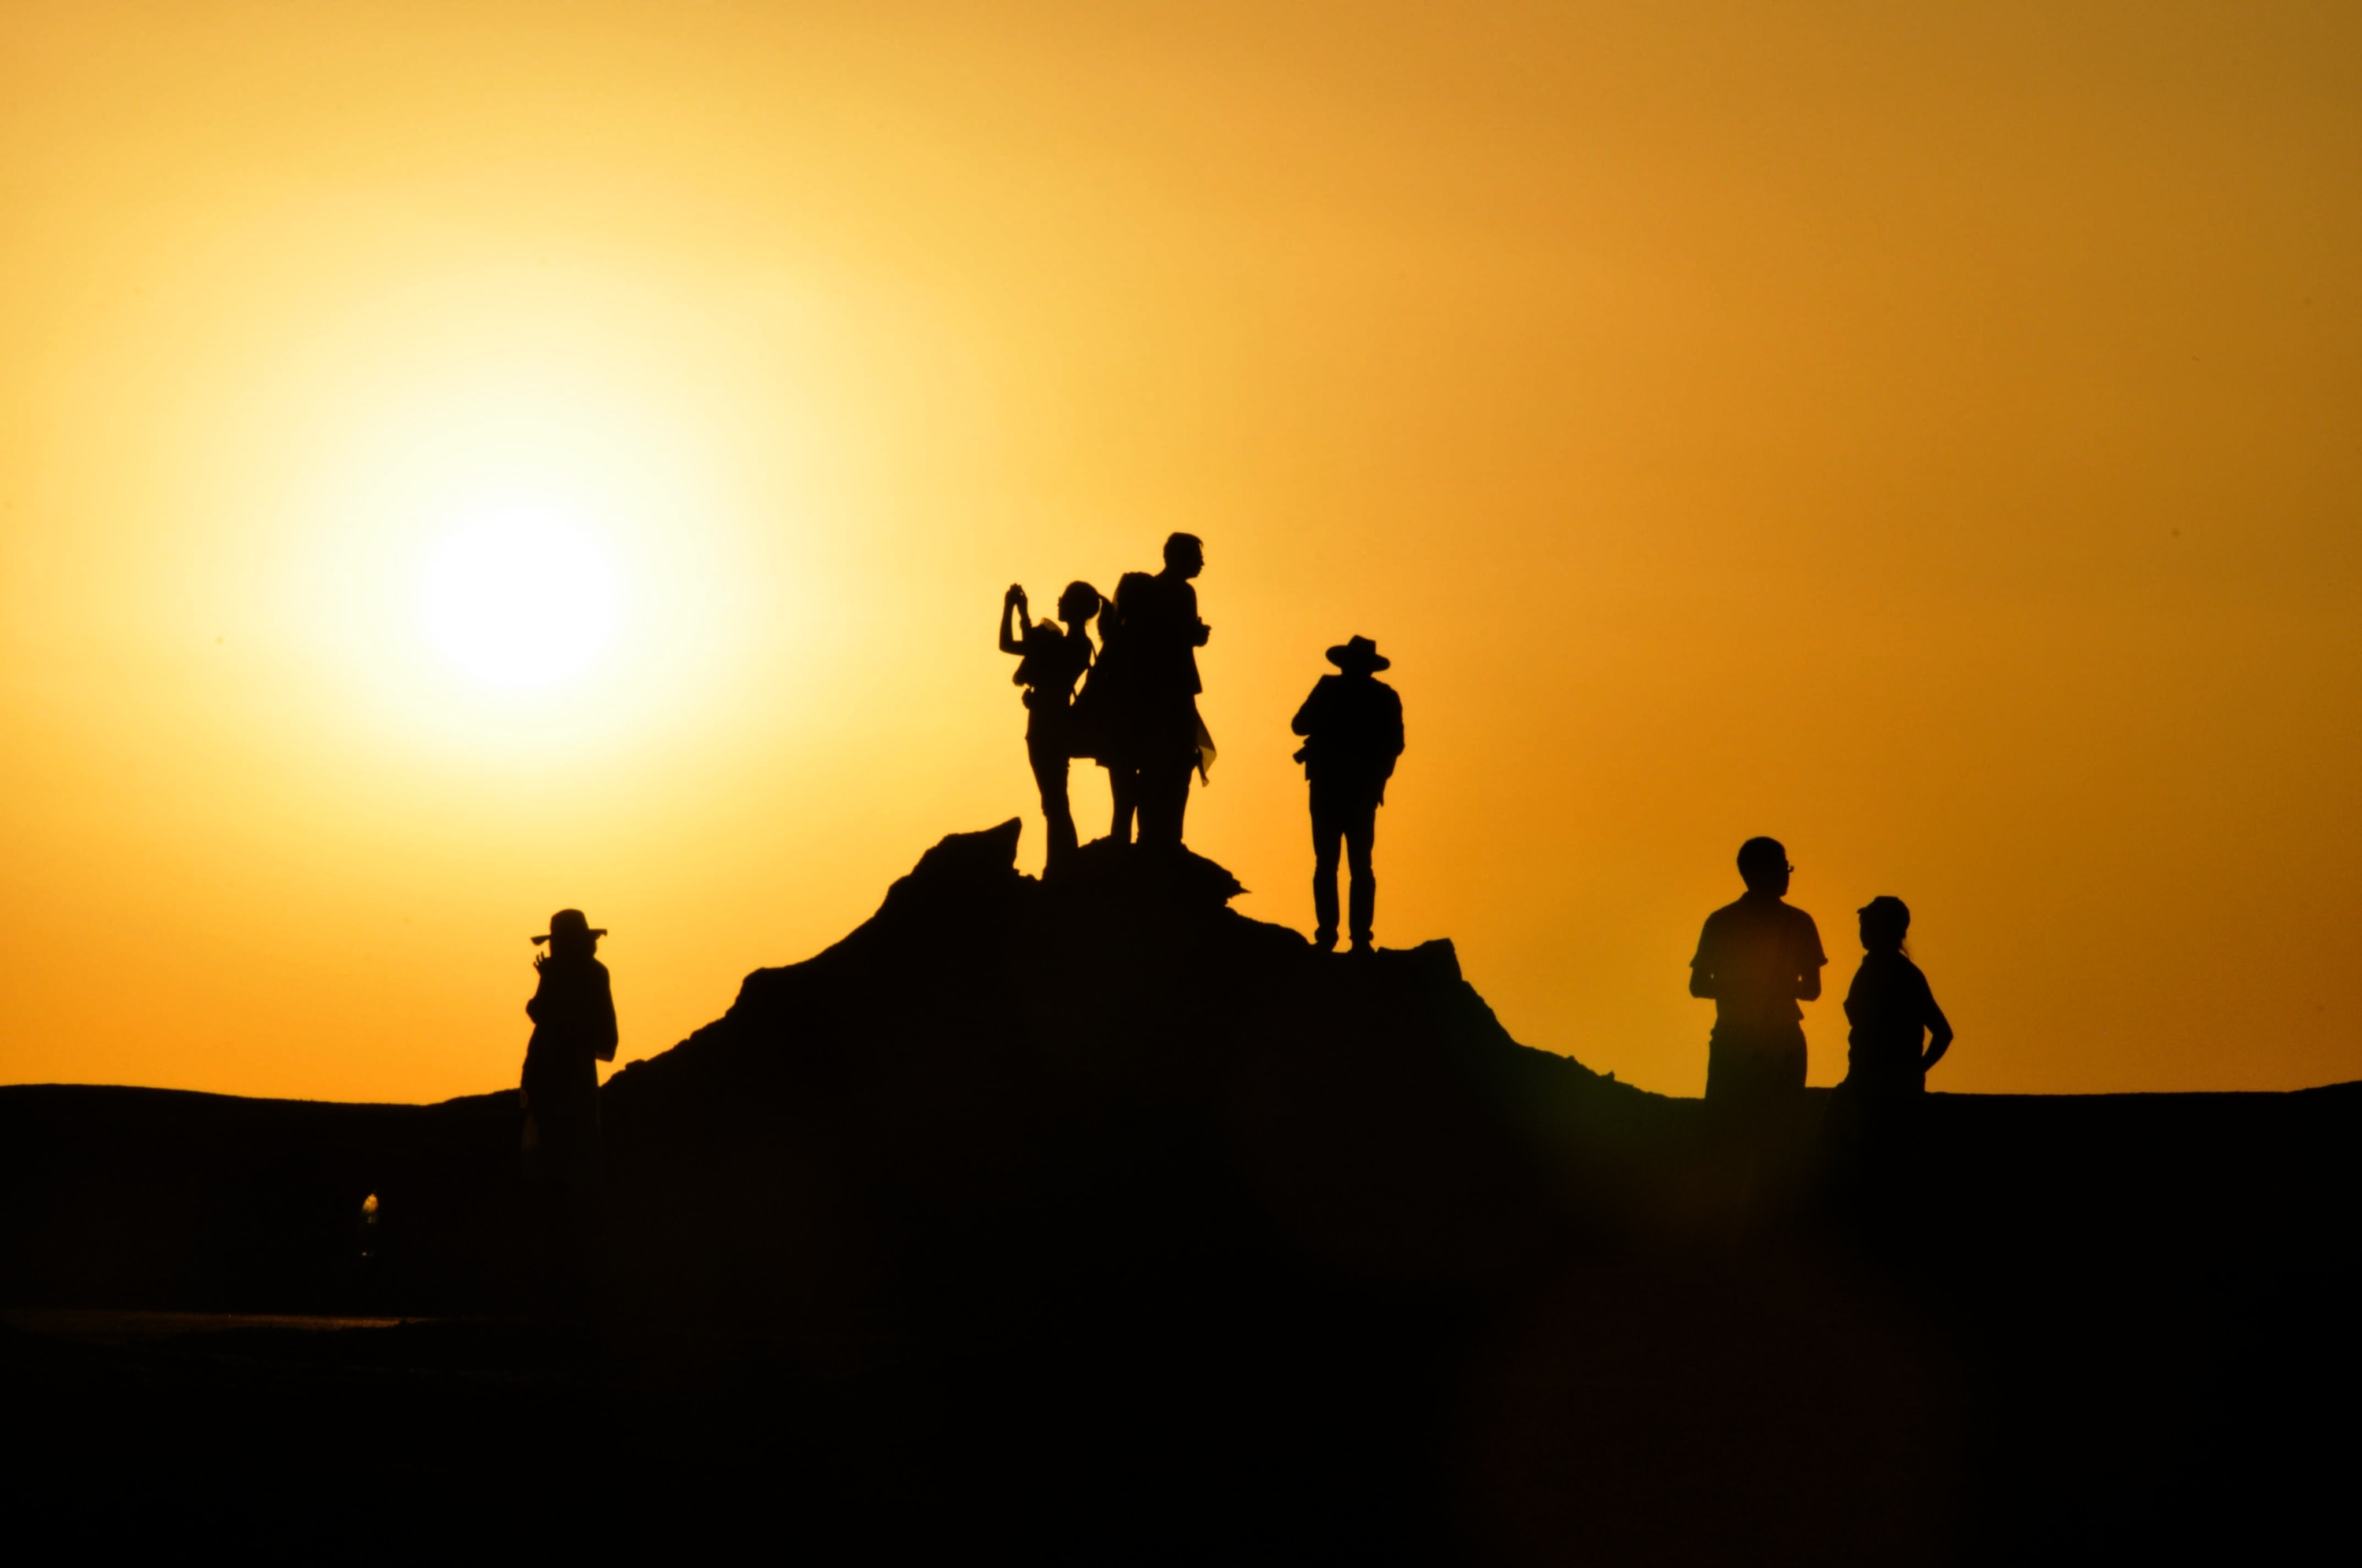 Silhouettes of hikers atop a hillside at sunset